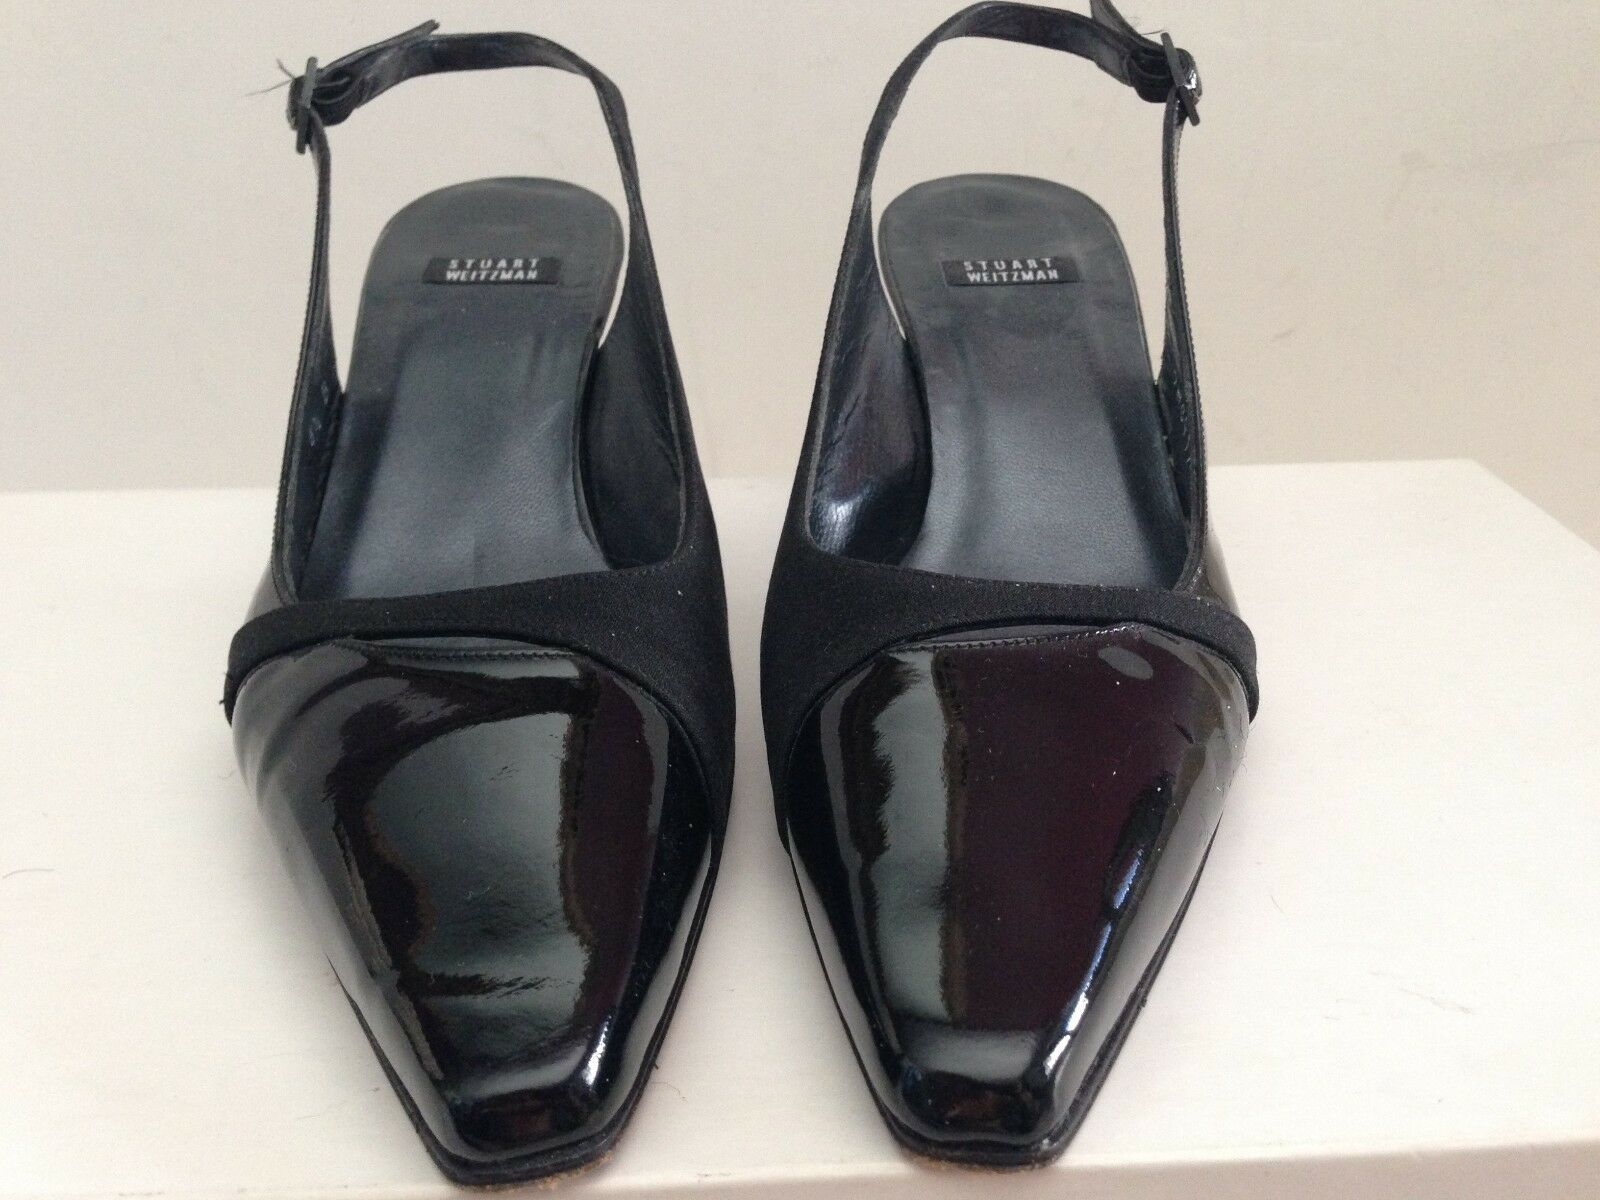 STUART WEITZMAN BLACK PATENT LEATHER POINTED TOE HEELS SIZE 6.5